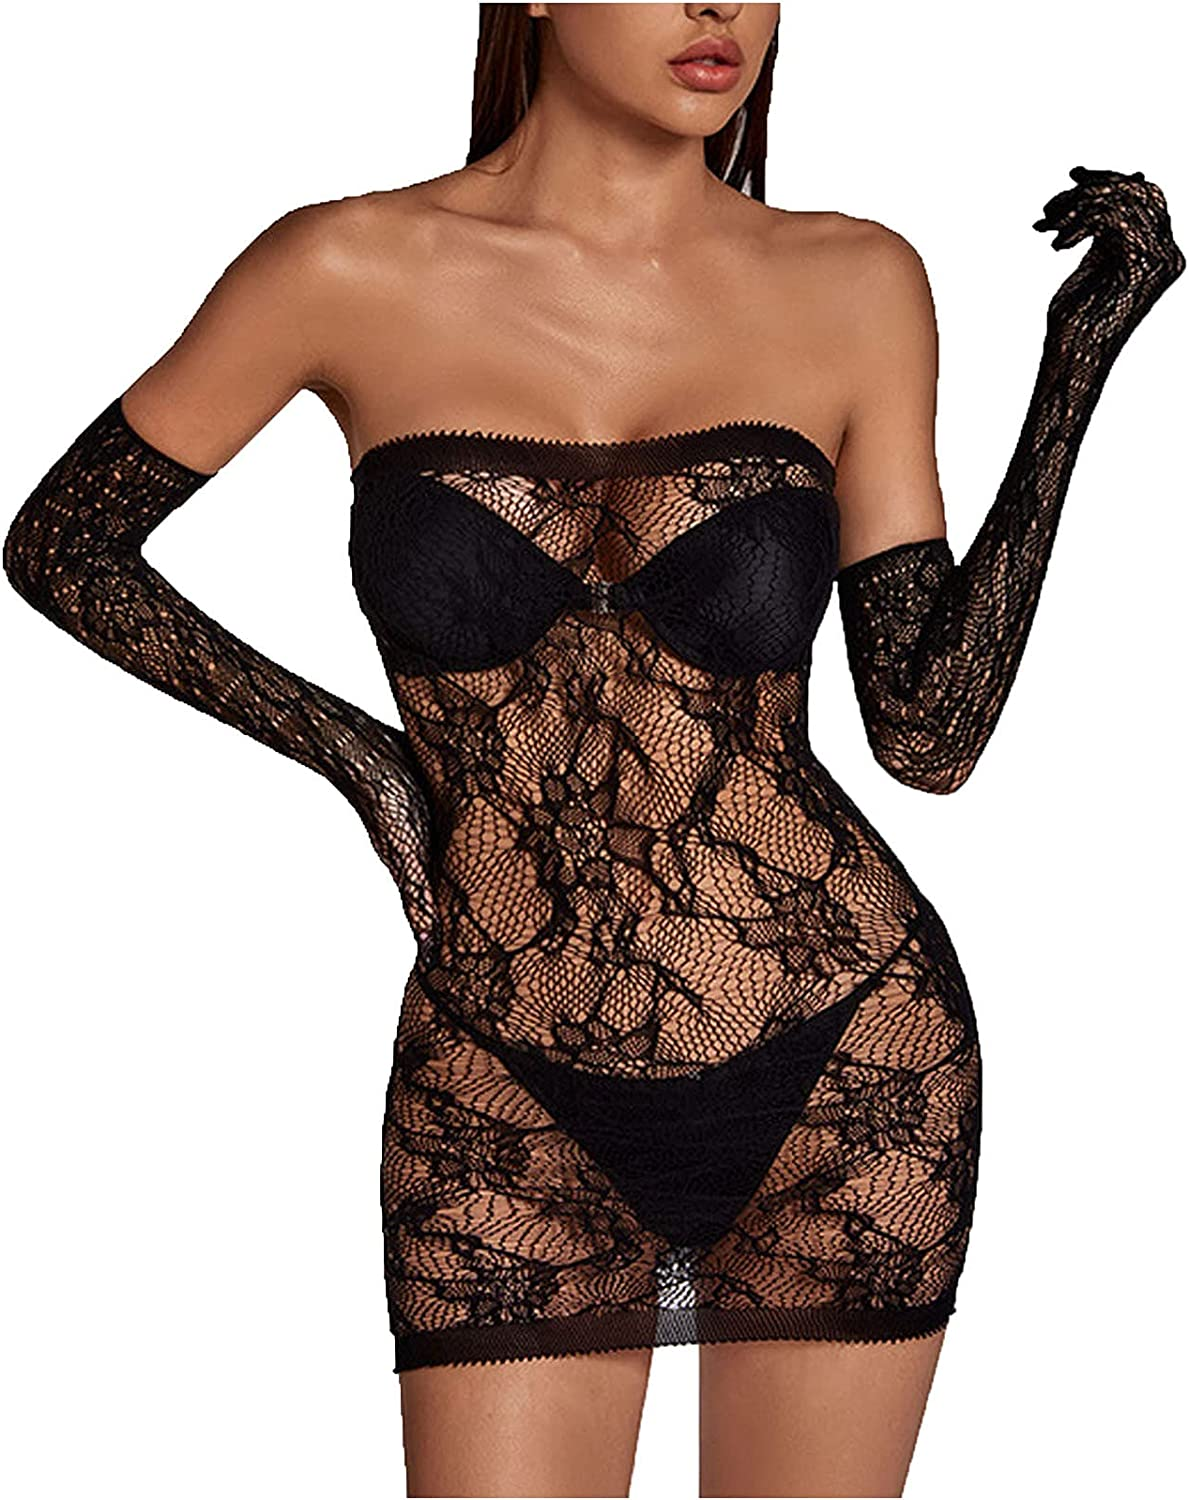 CofeeMO Plus Size Lingerie for Women Sexy Solid Lace Underwear Corset Hollow Push Up Bra and Panty Pajama Set with Garter